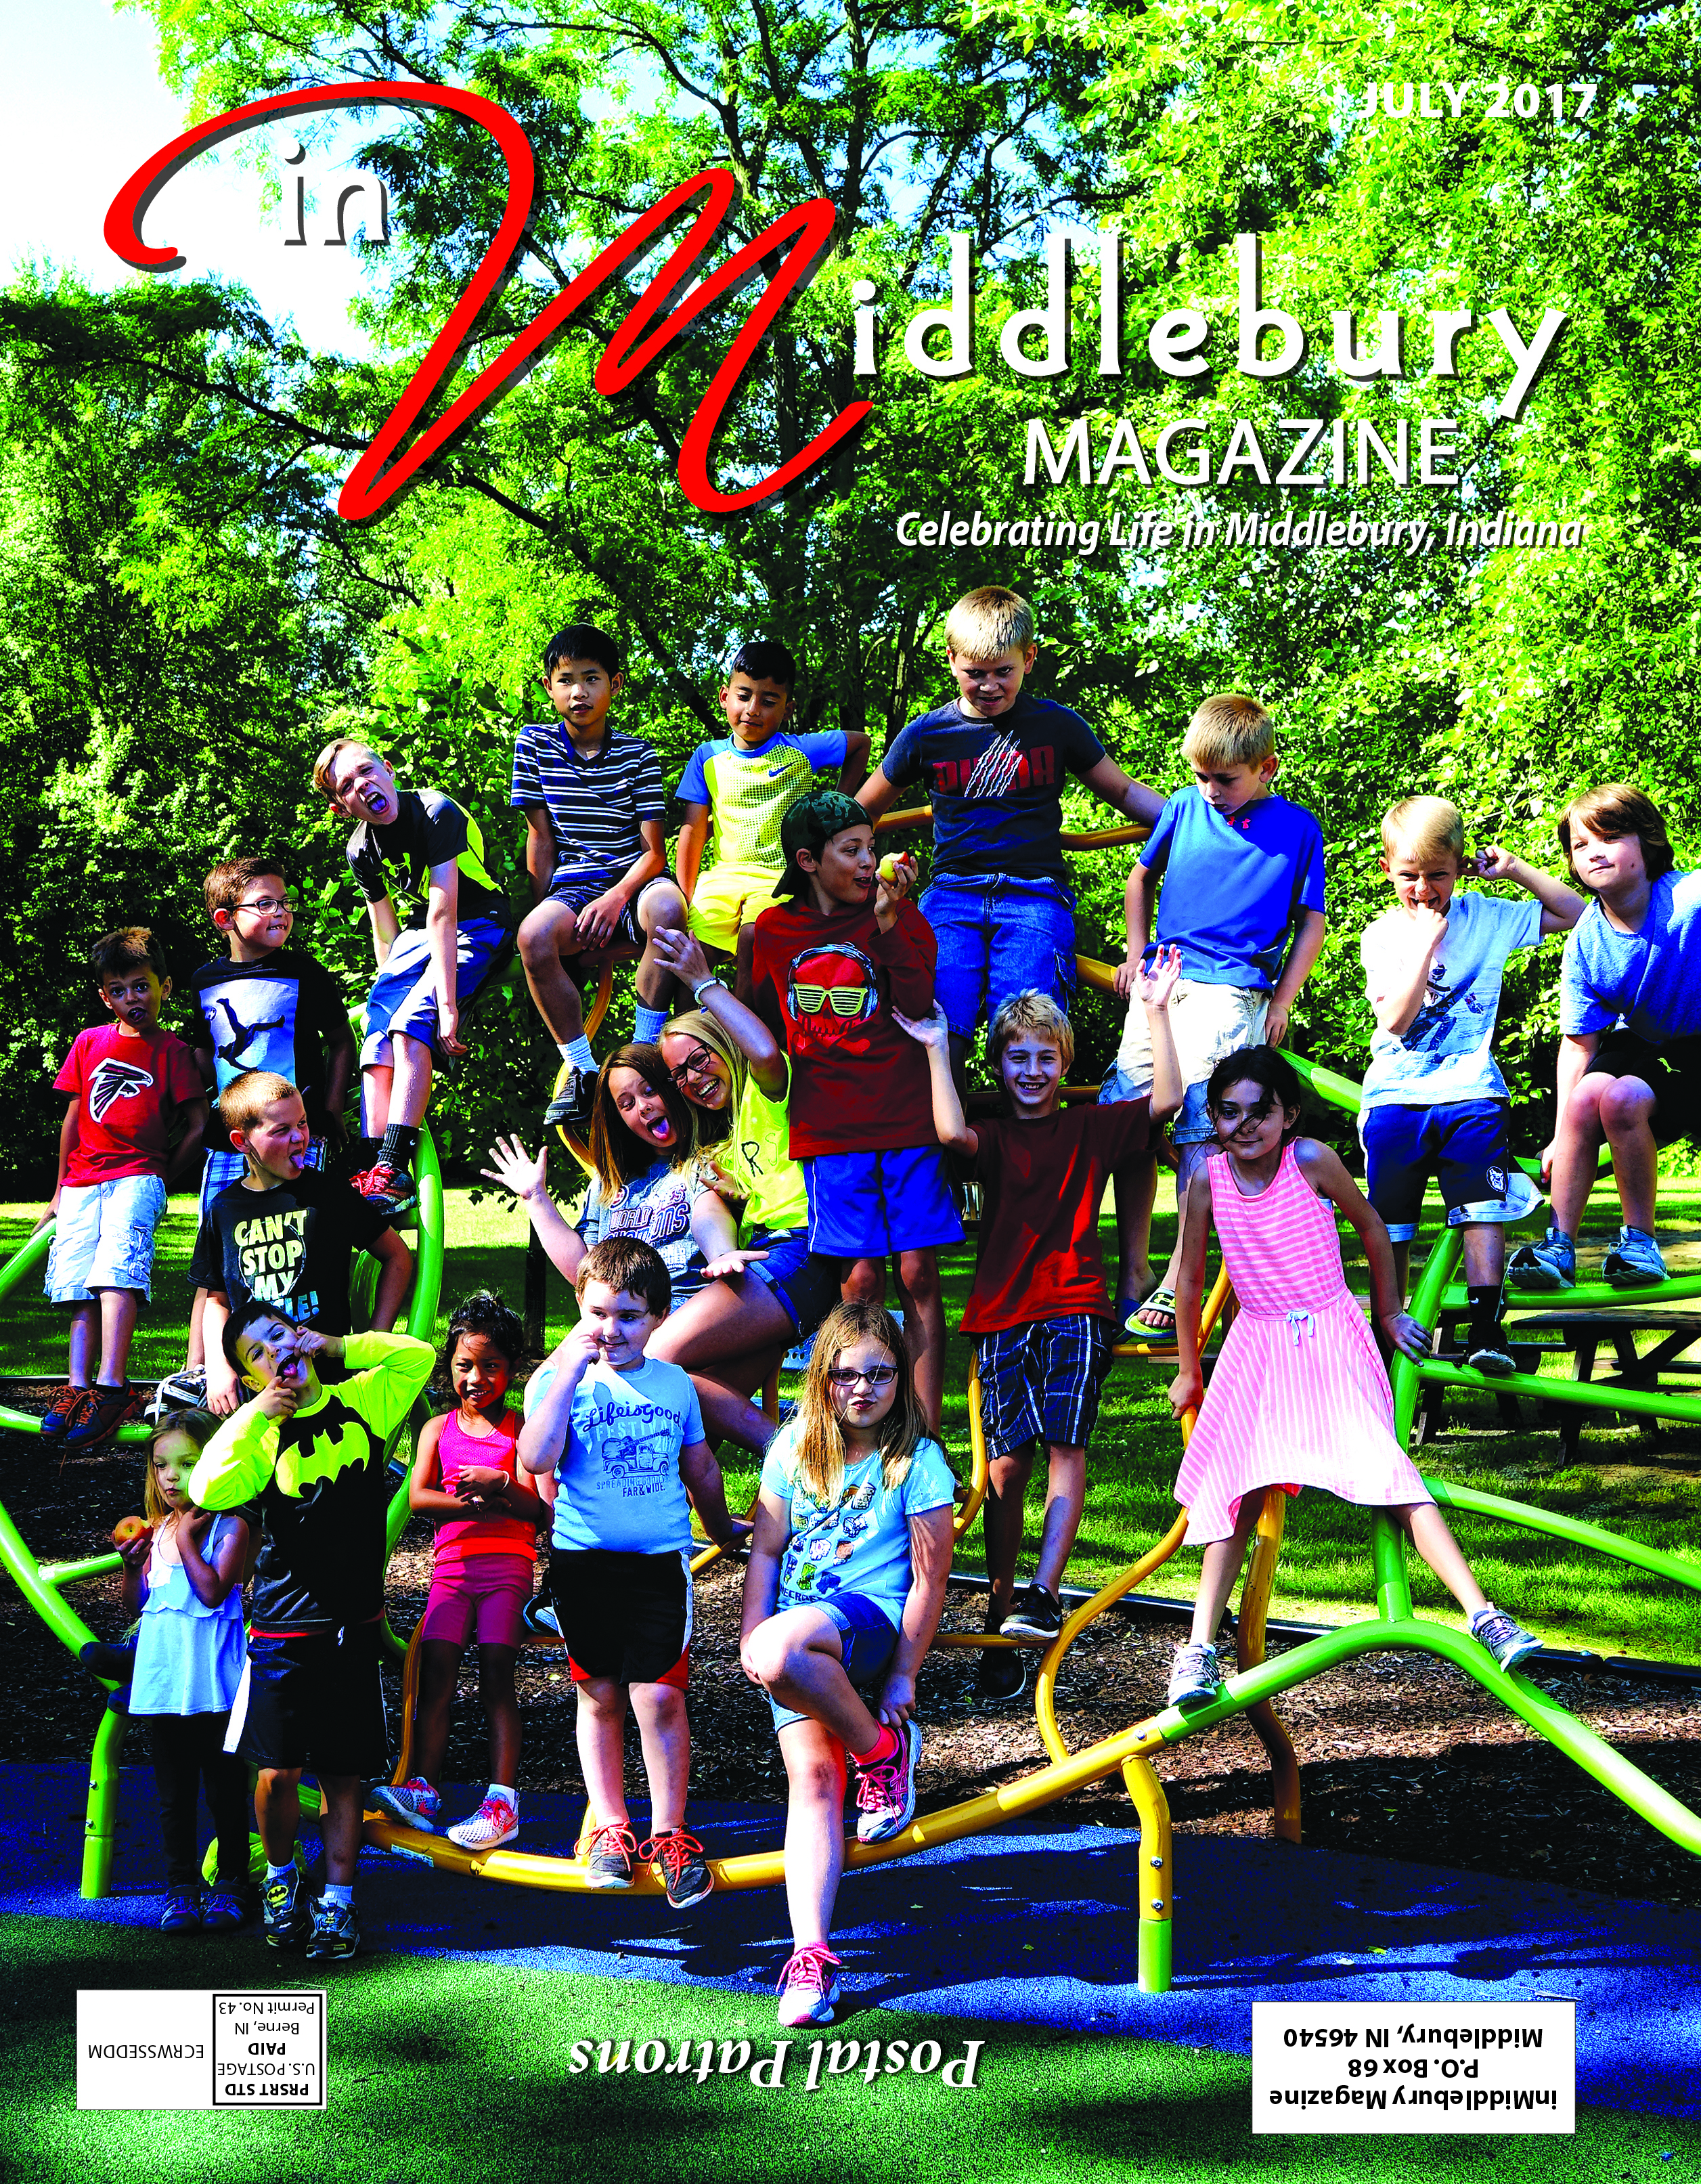 inMidddlebury Magazine July 2017